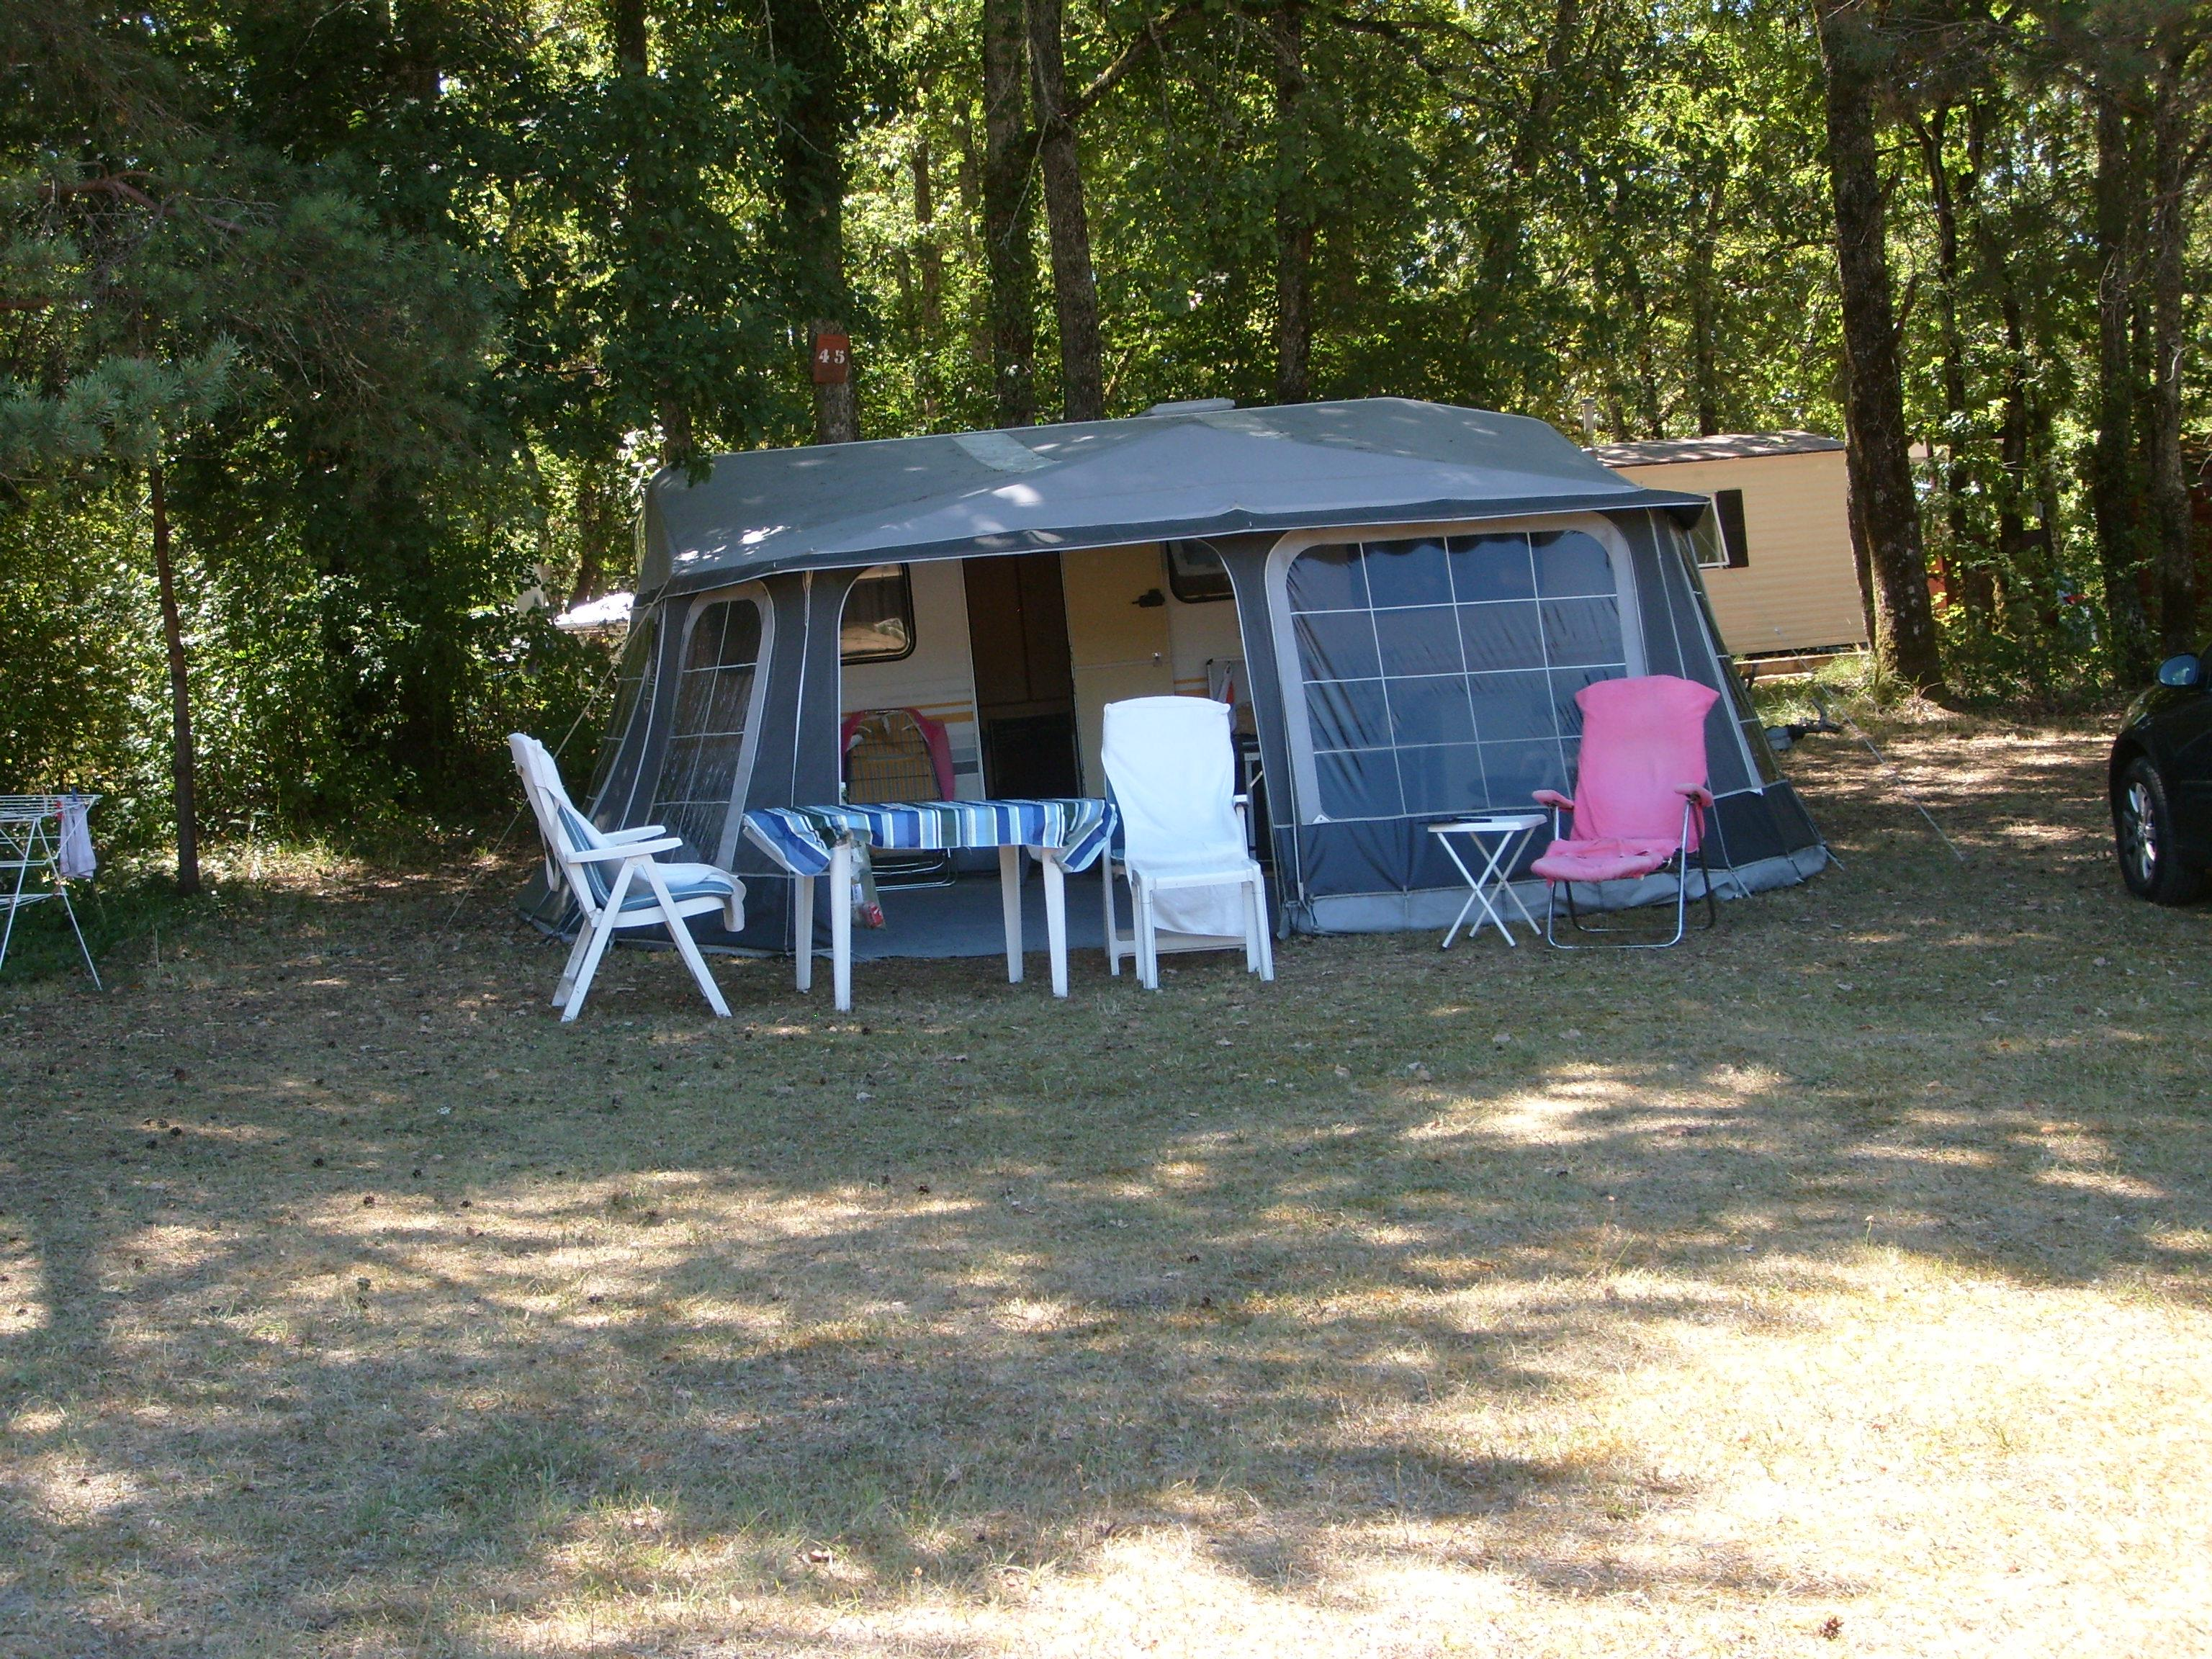 Emplacement - Emplacement Camping - Camping La Forêt